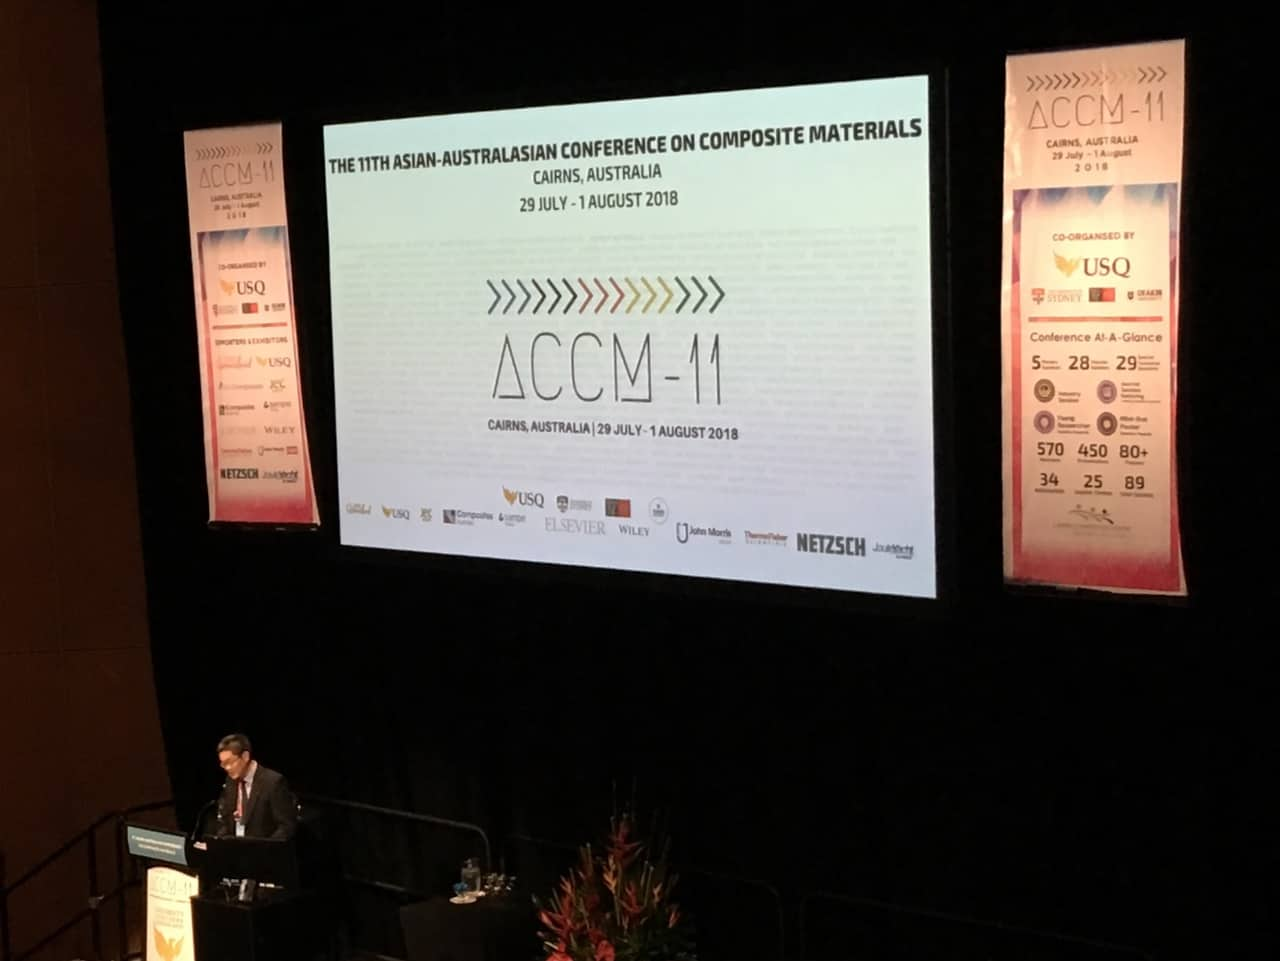 ACCM-11: NETZSCH supports conference in Cairns